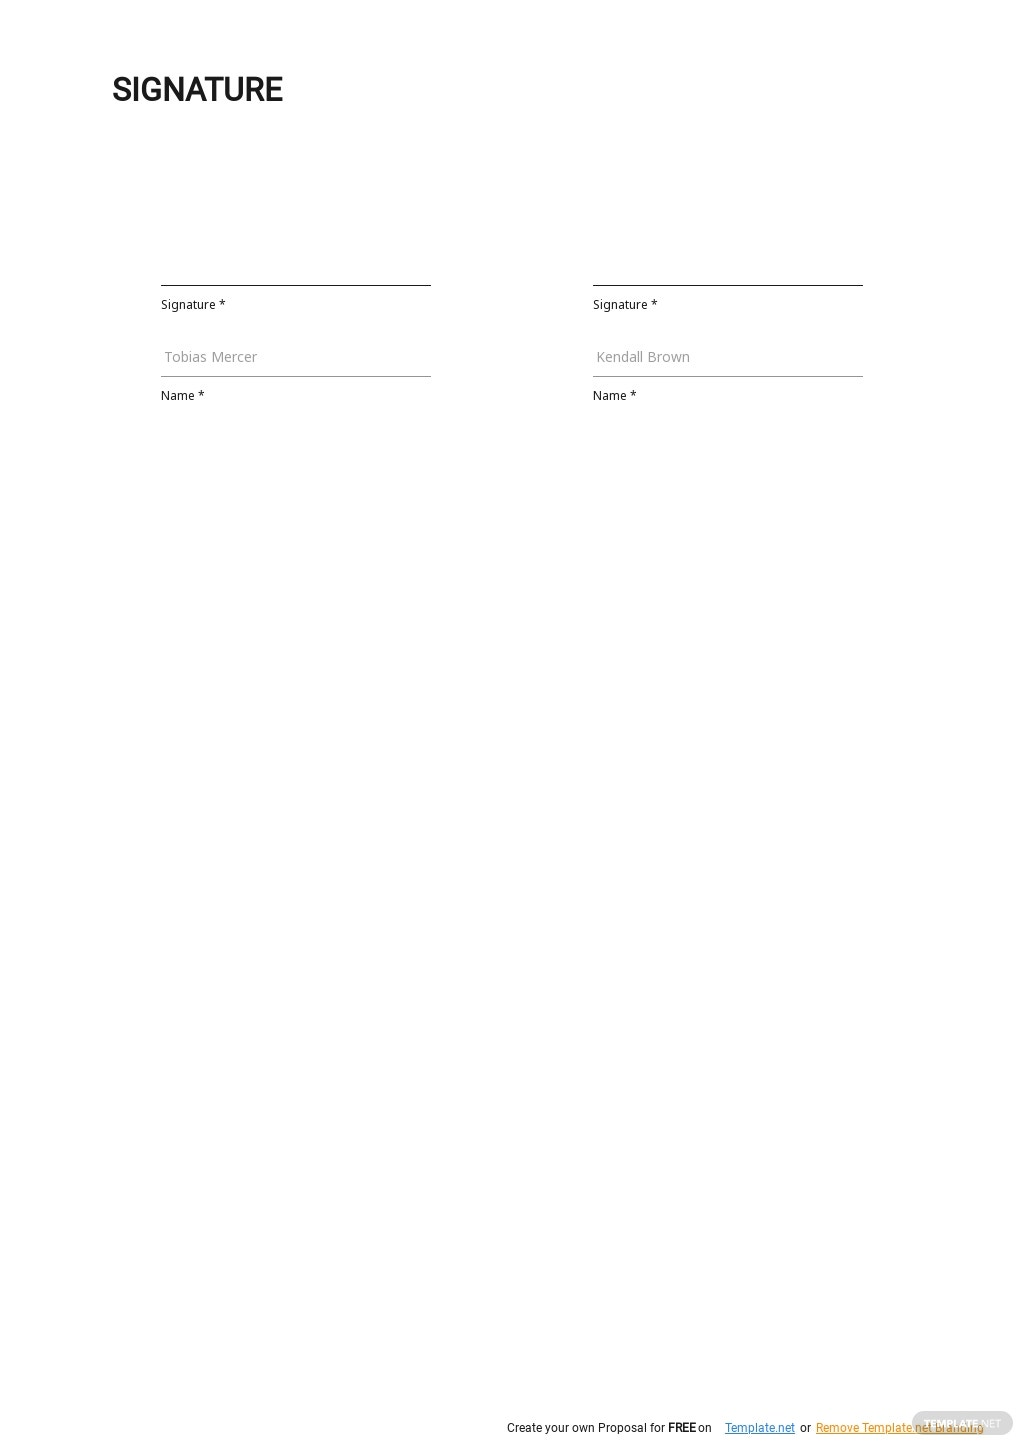 Purchase and Sale Agreement Template 2.jpe